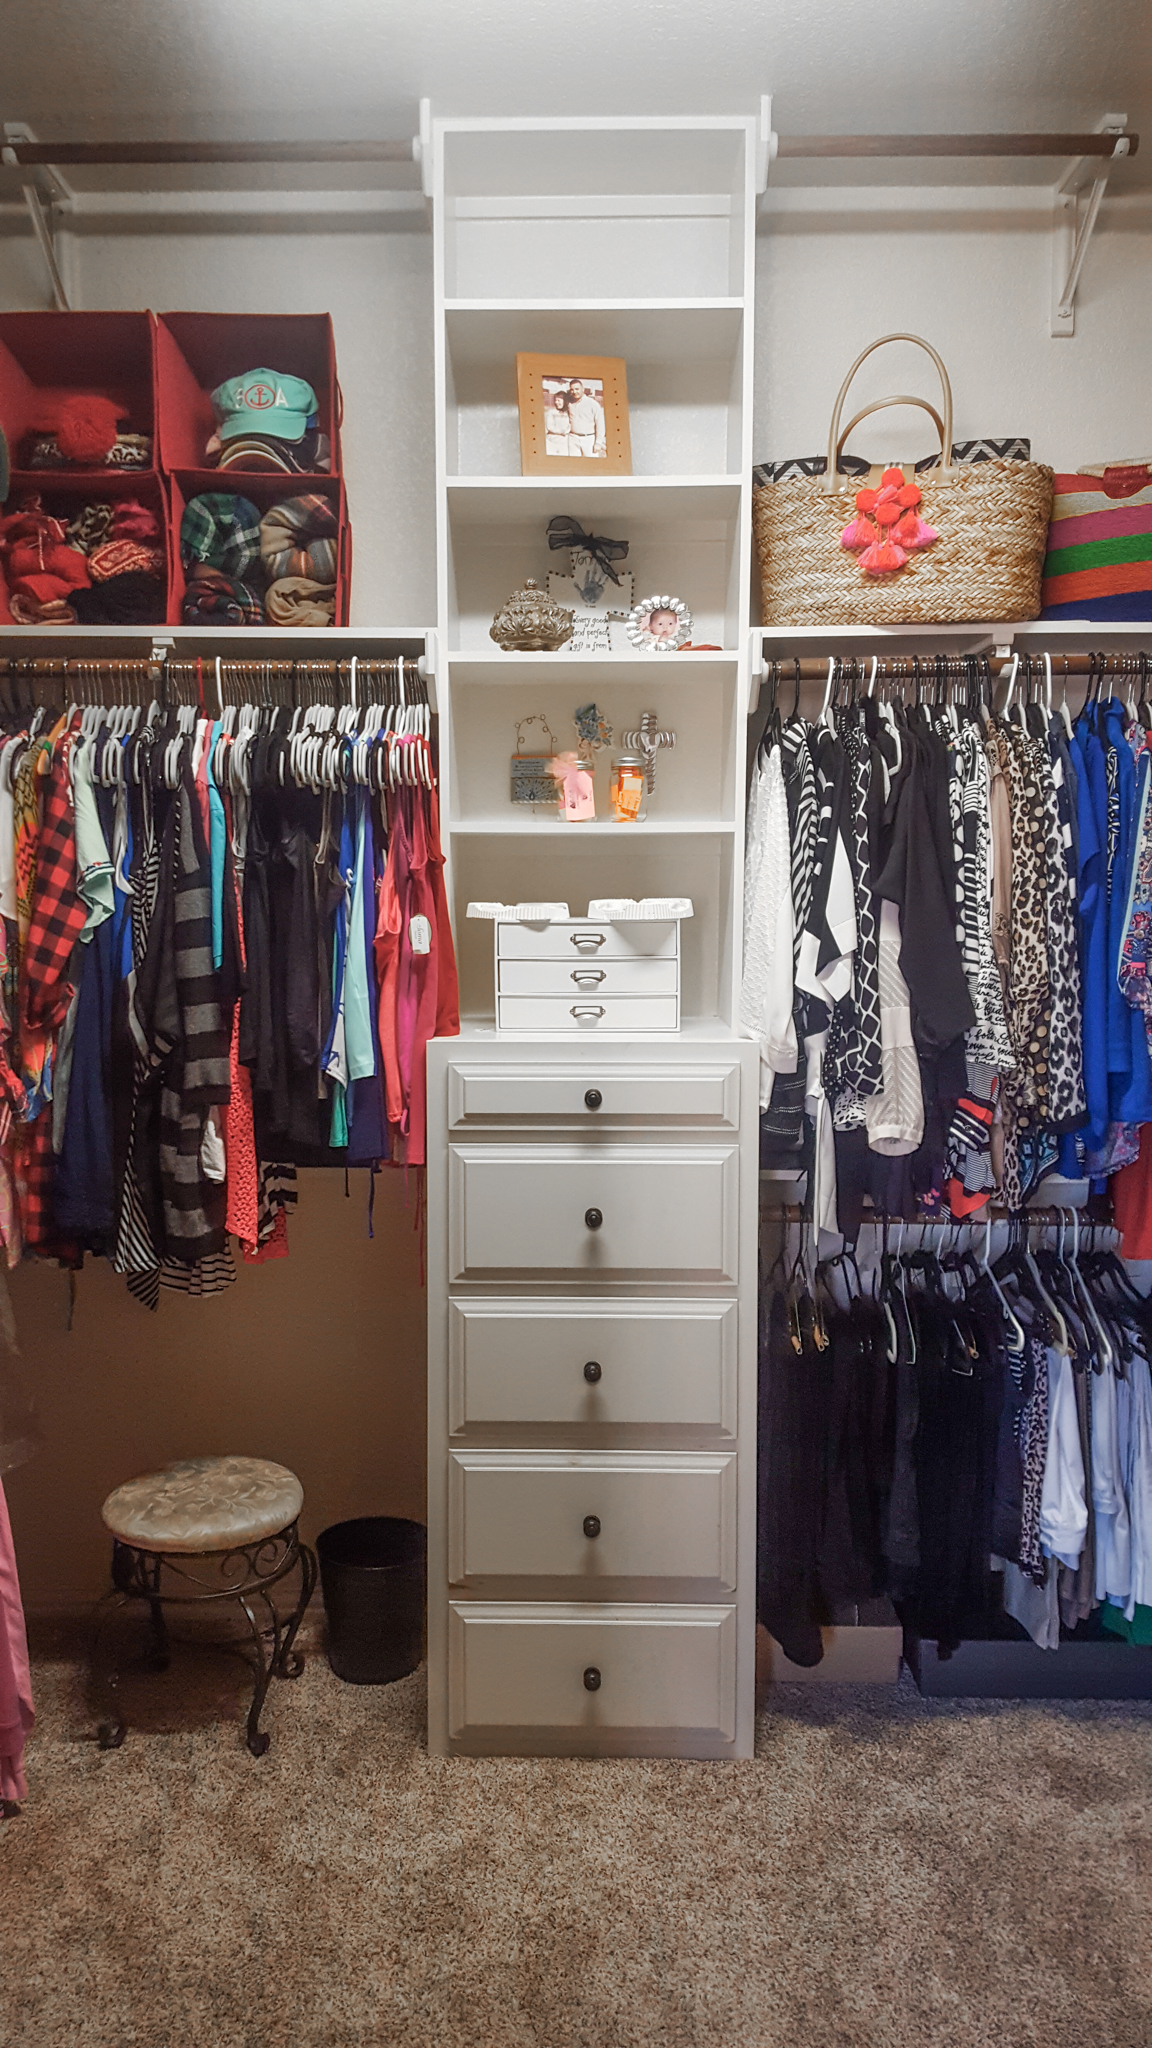 Optimal Life Space Closet-103329.jpg